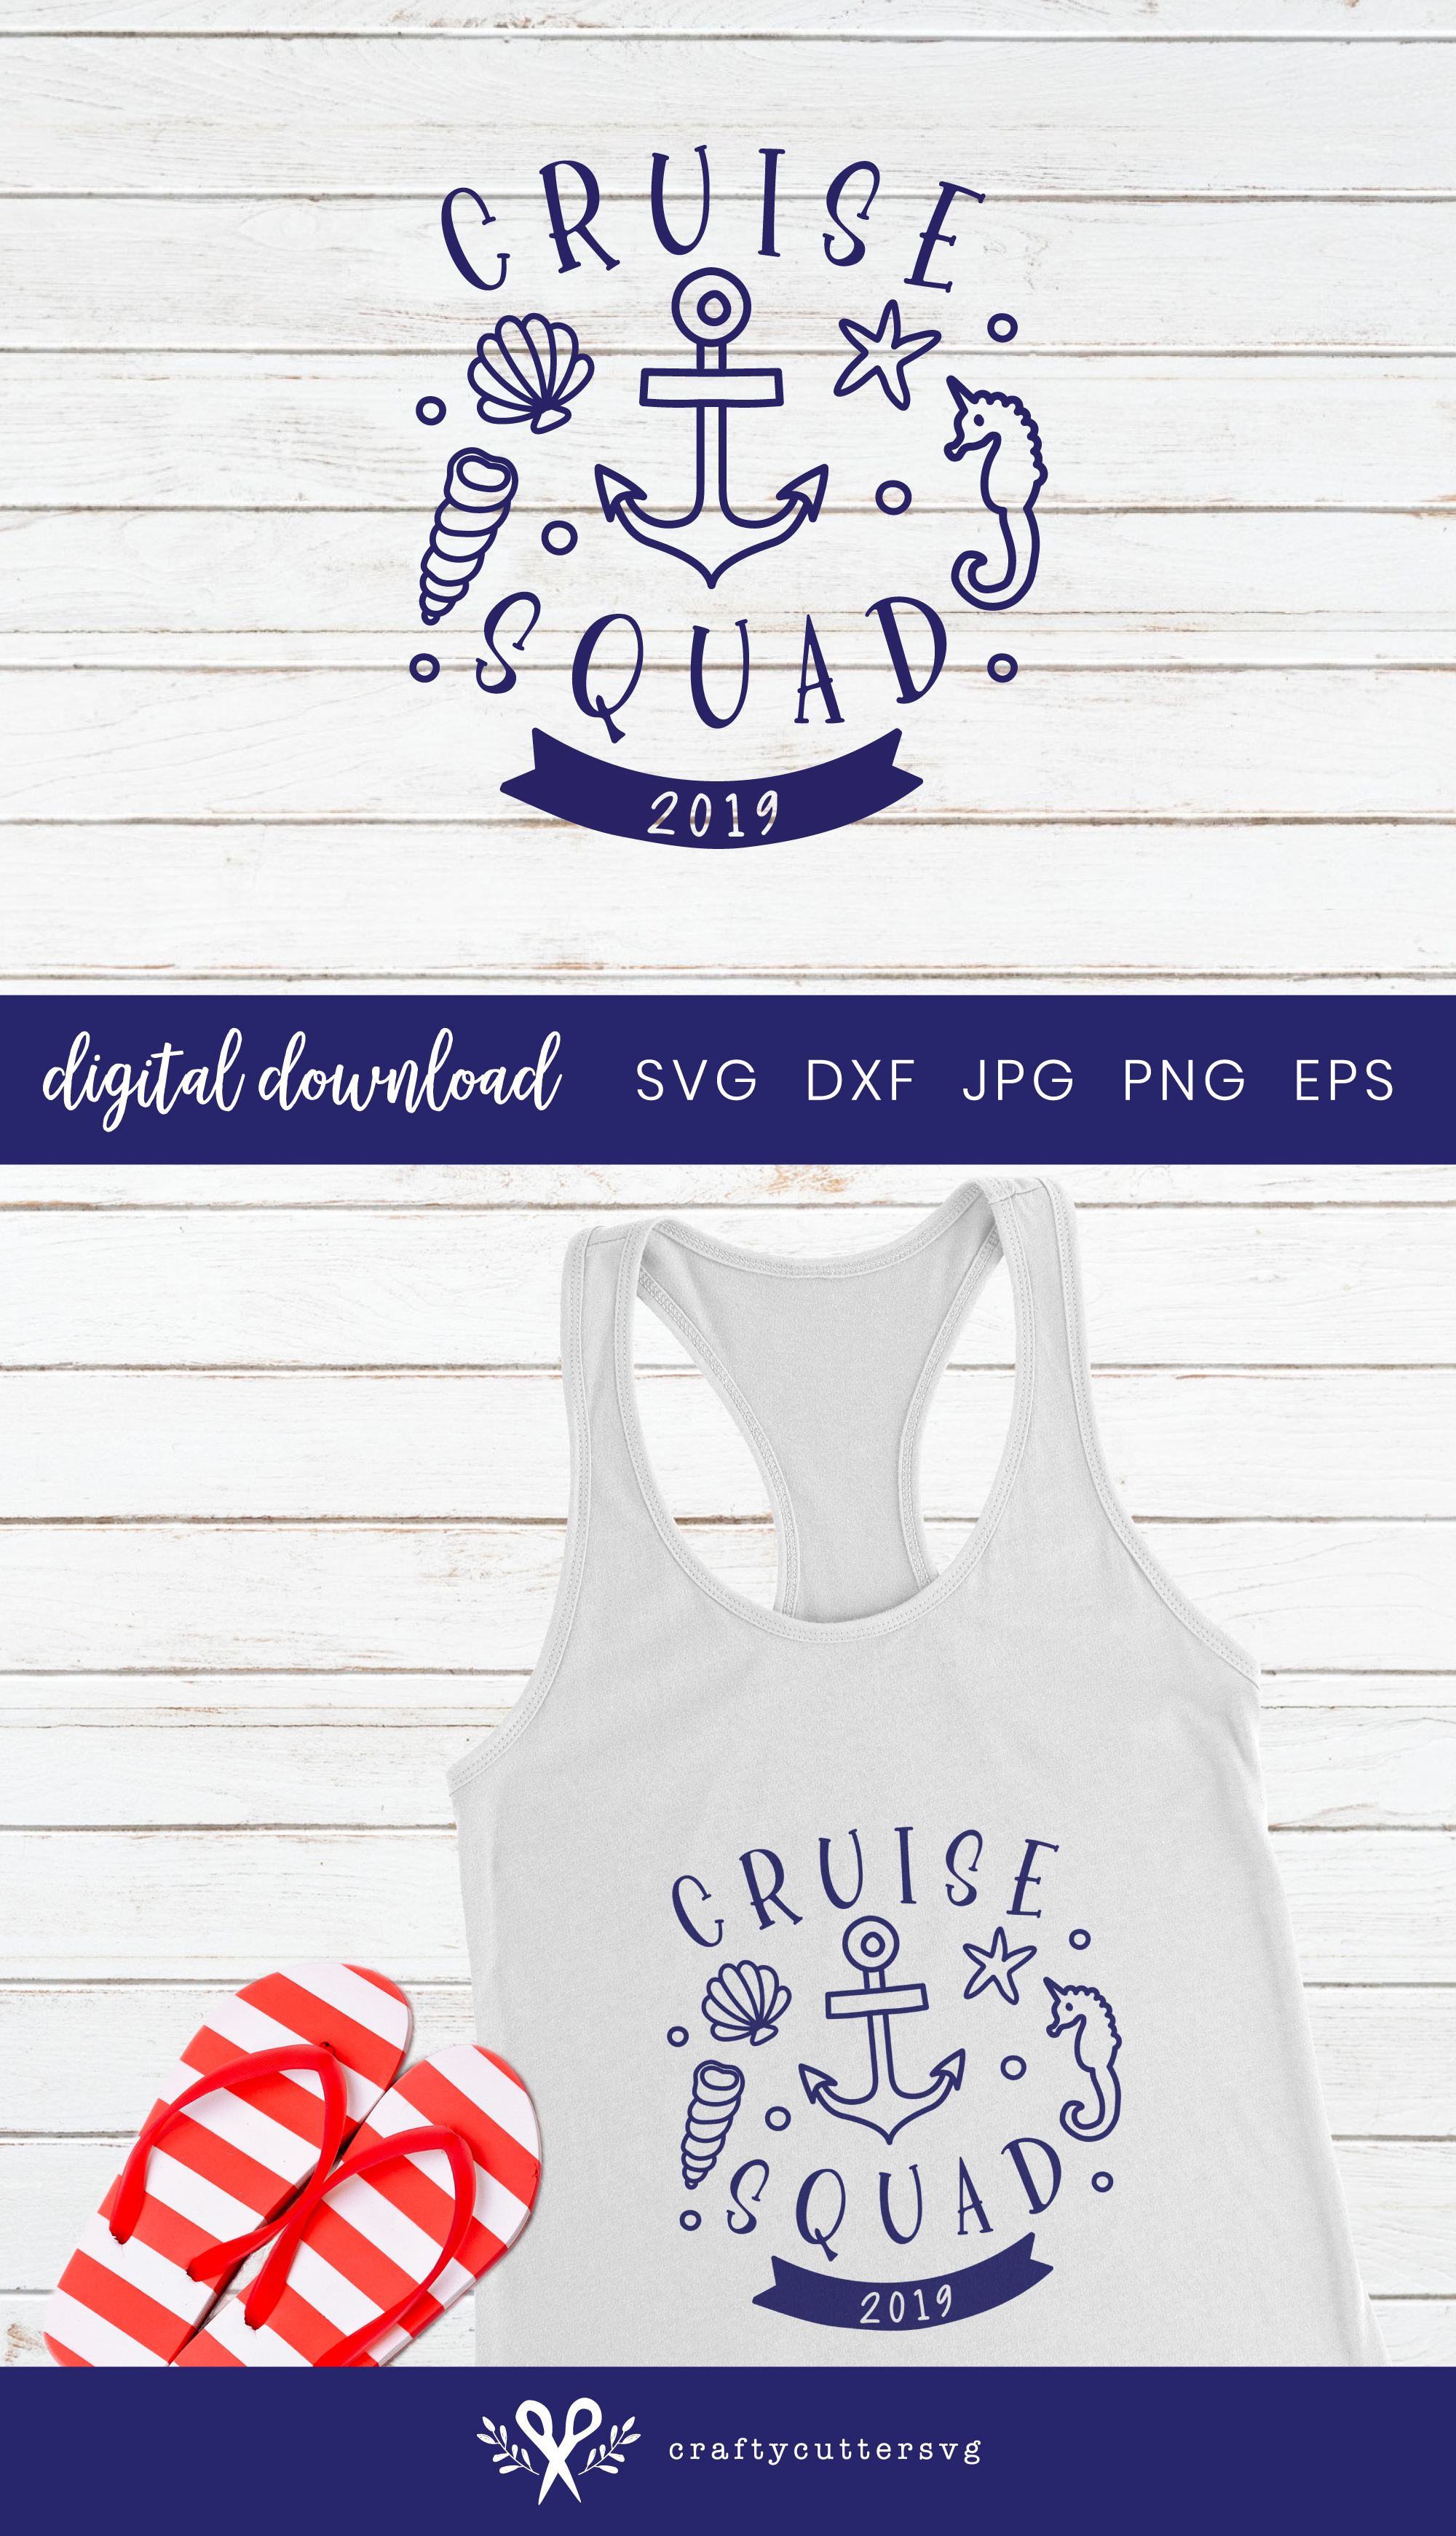 Cruise squad 2019 Svg Cut File Anchor Seahorse Clipart example image 3